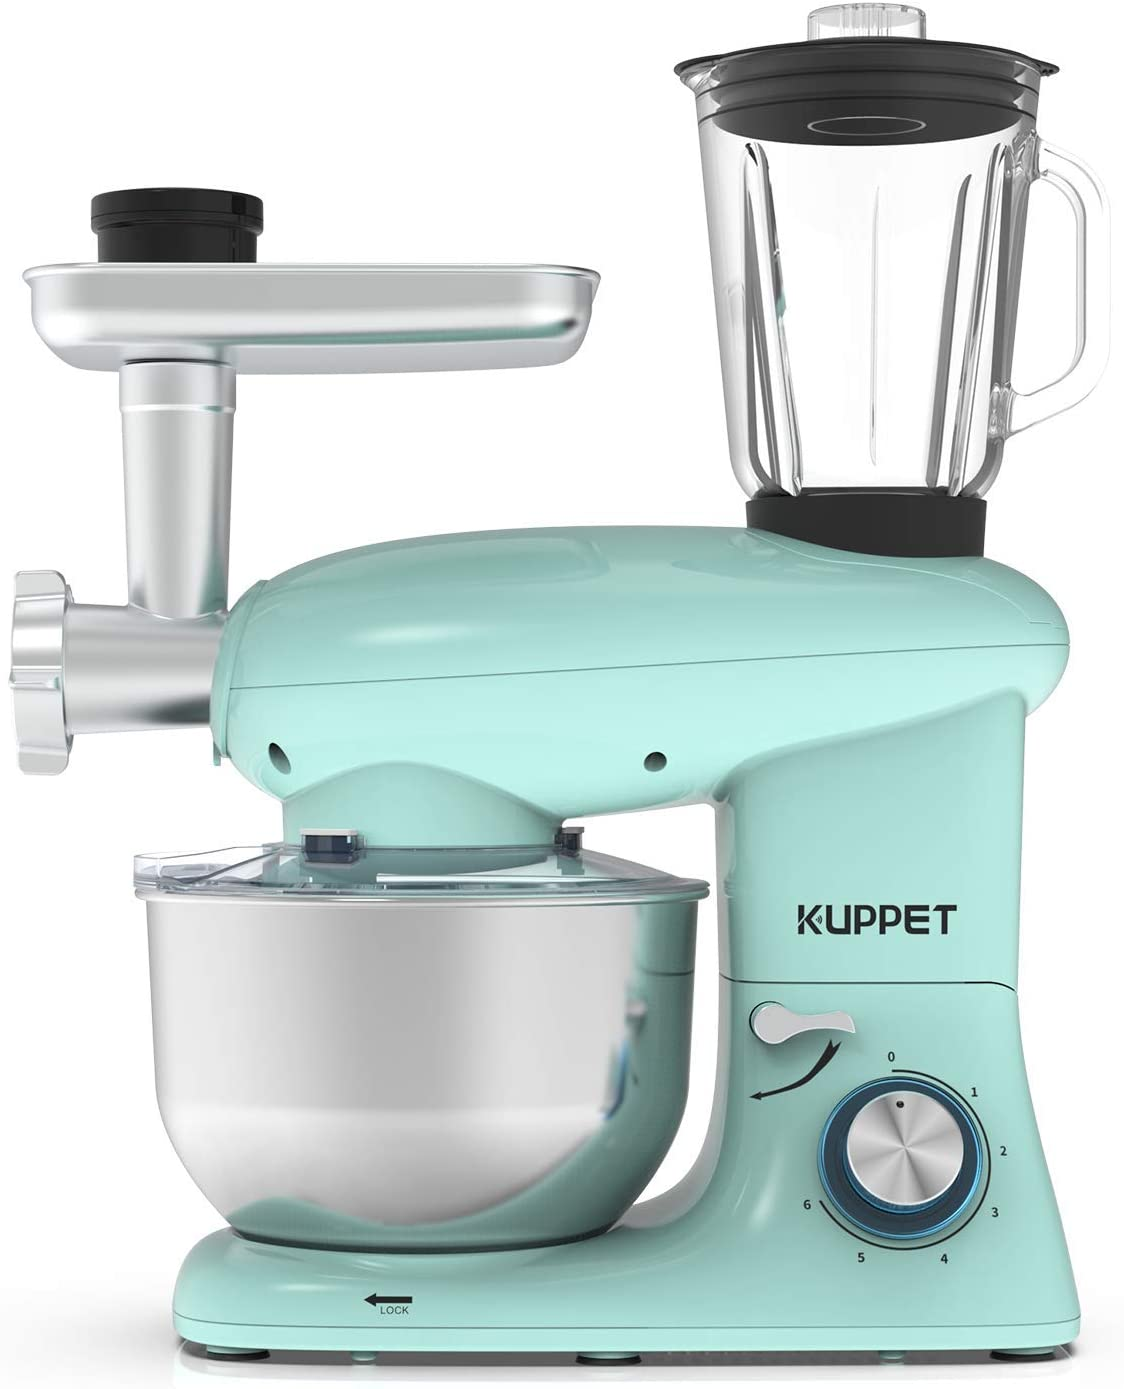 KUPPET 3 in 1 Stand Mixer, 6 Speed Electric Mixer, Tilt Head Kitchen Mixer with Meat Grinder and Juice Blender, 6 Quarts 850W Food Mixer - Blue